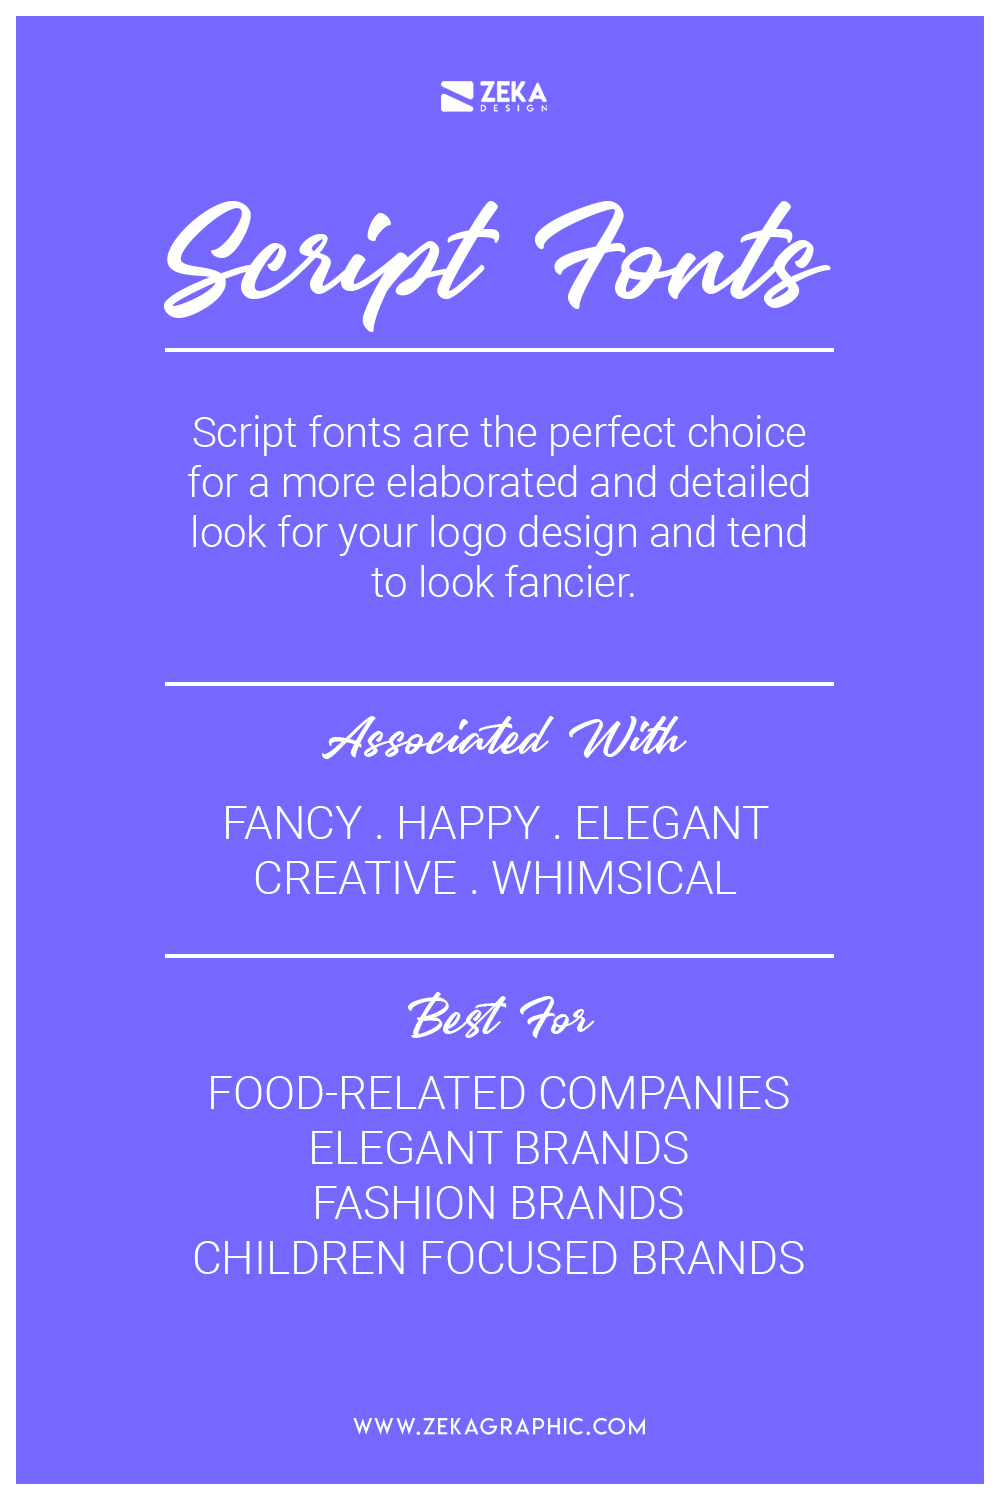 Script Font Meaning and How To Use Them